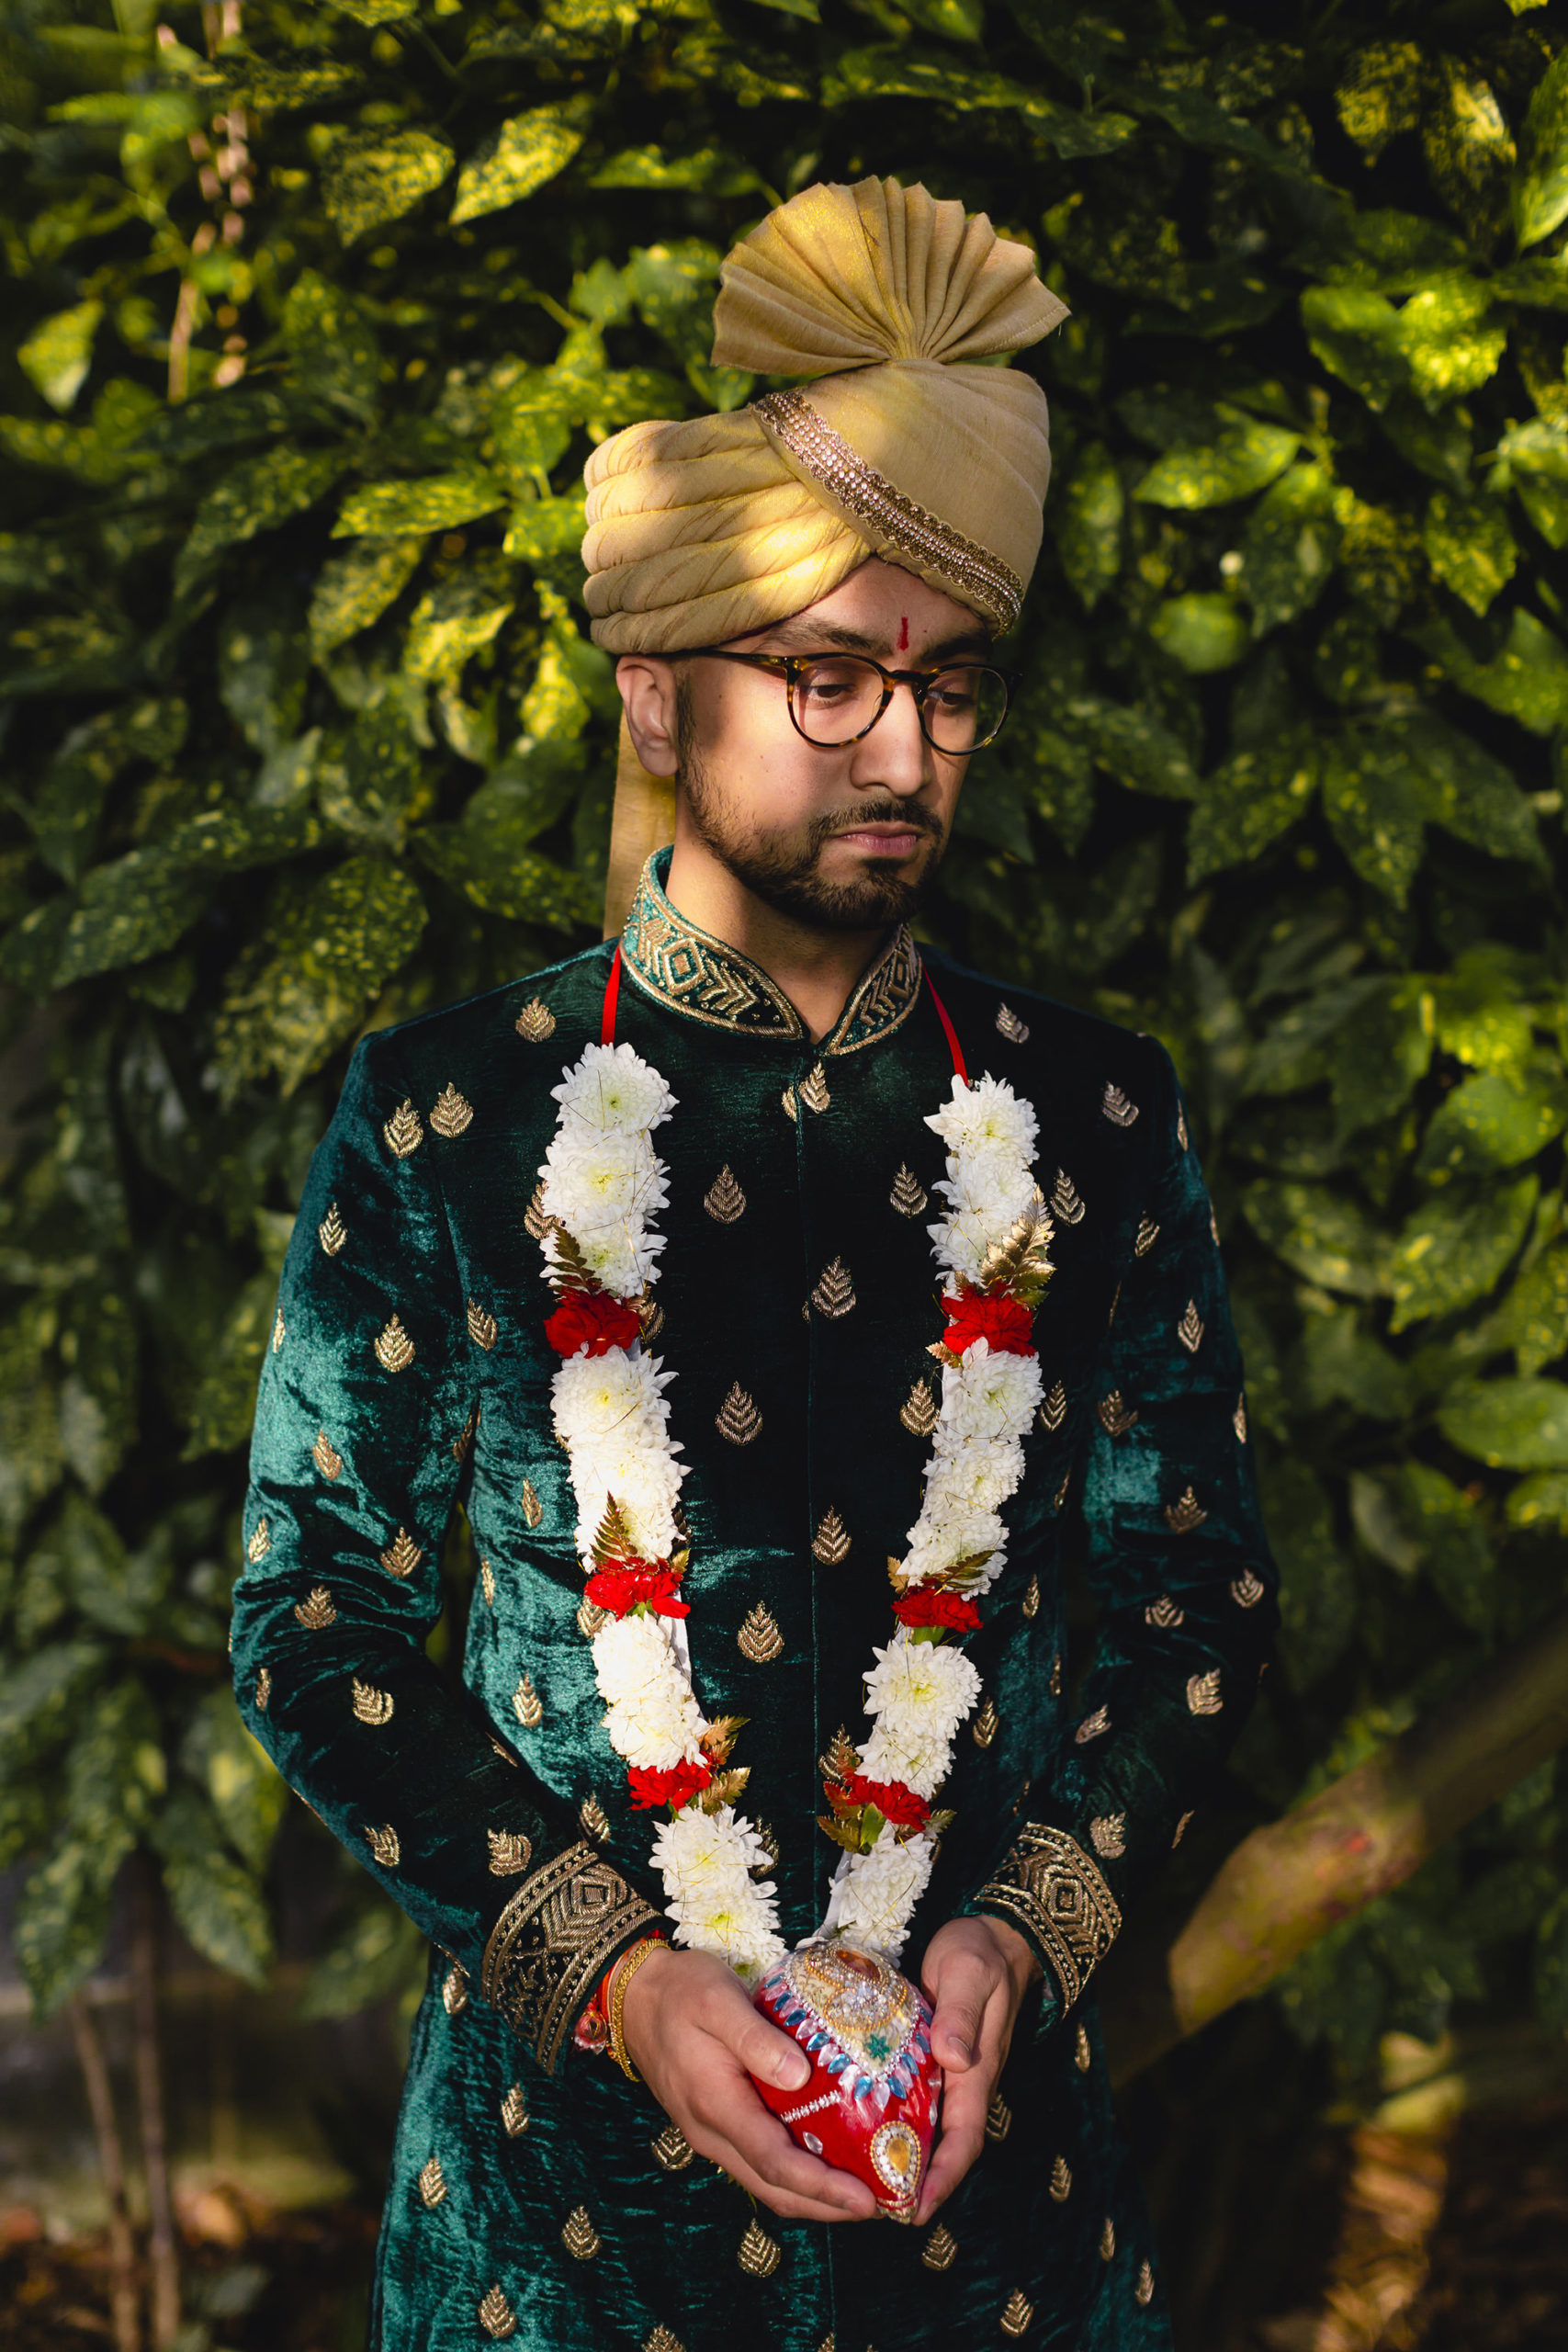 groom portrait in green wedding outfit